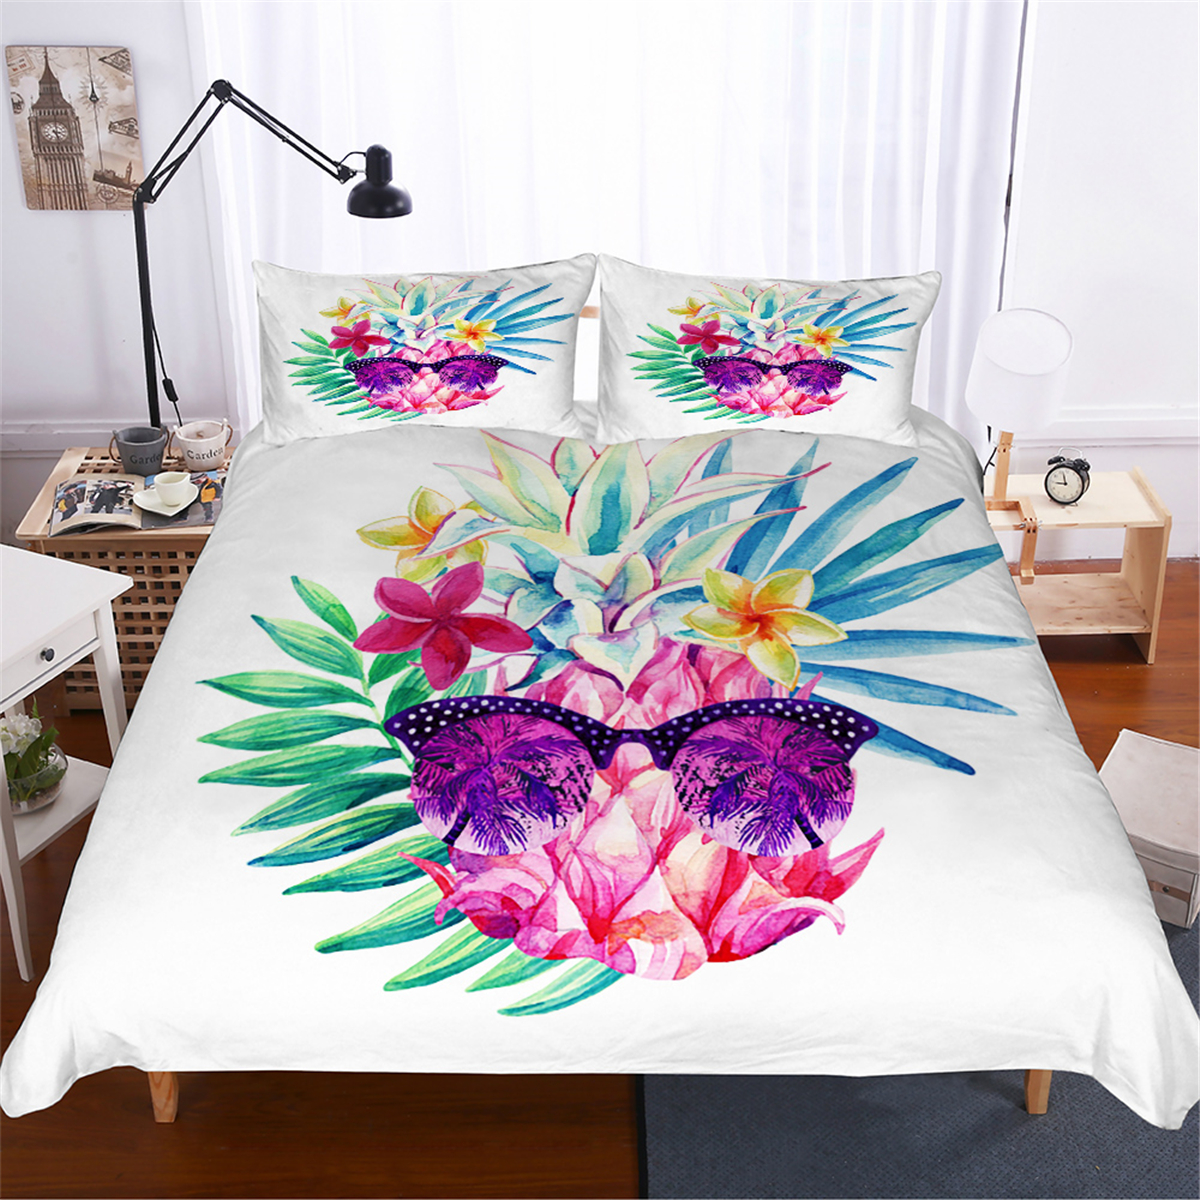 Vacation Pineapple Duvet Cover Colorful Tropical Fruit Bedding Set Kids Teens Comforter Set Single Double Bed Cover Bedspread